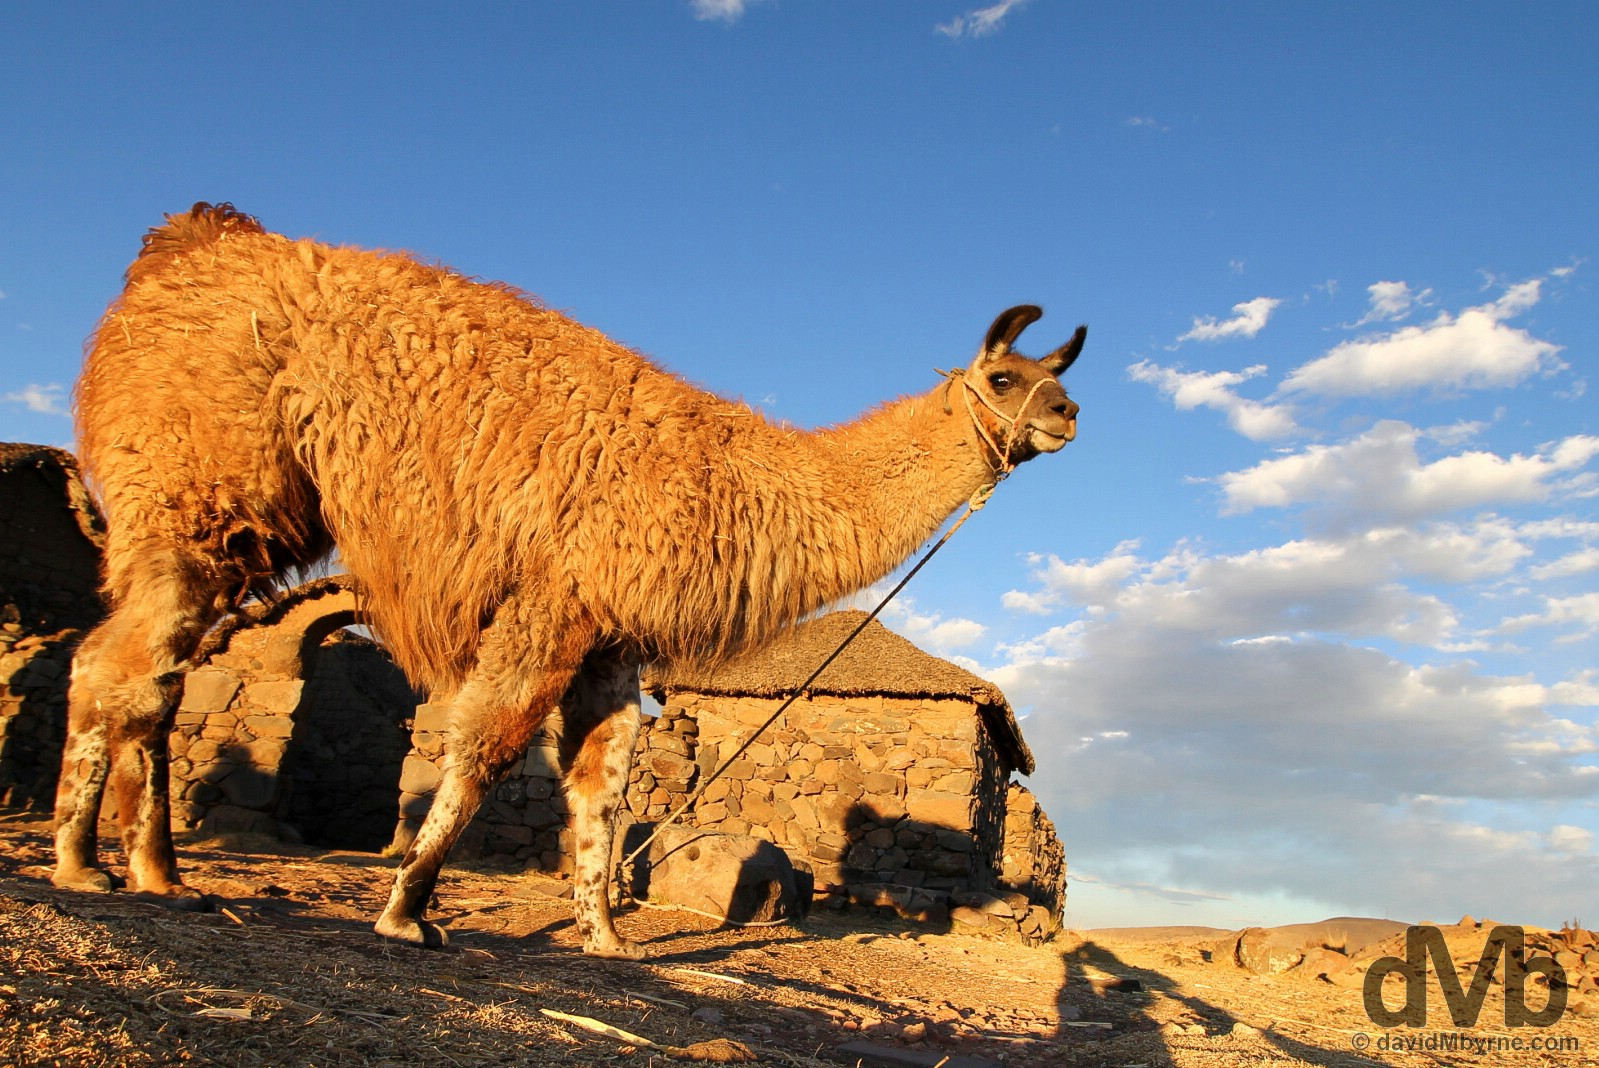 A llama on the shores of Lake Titicaca, Peru. August 19, 2015.